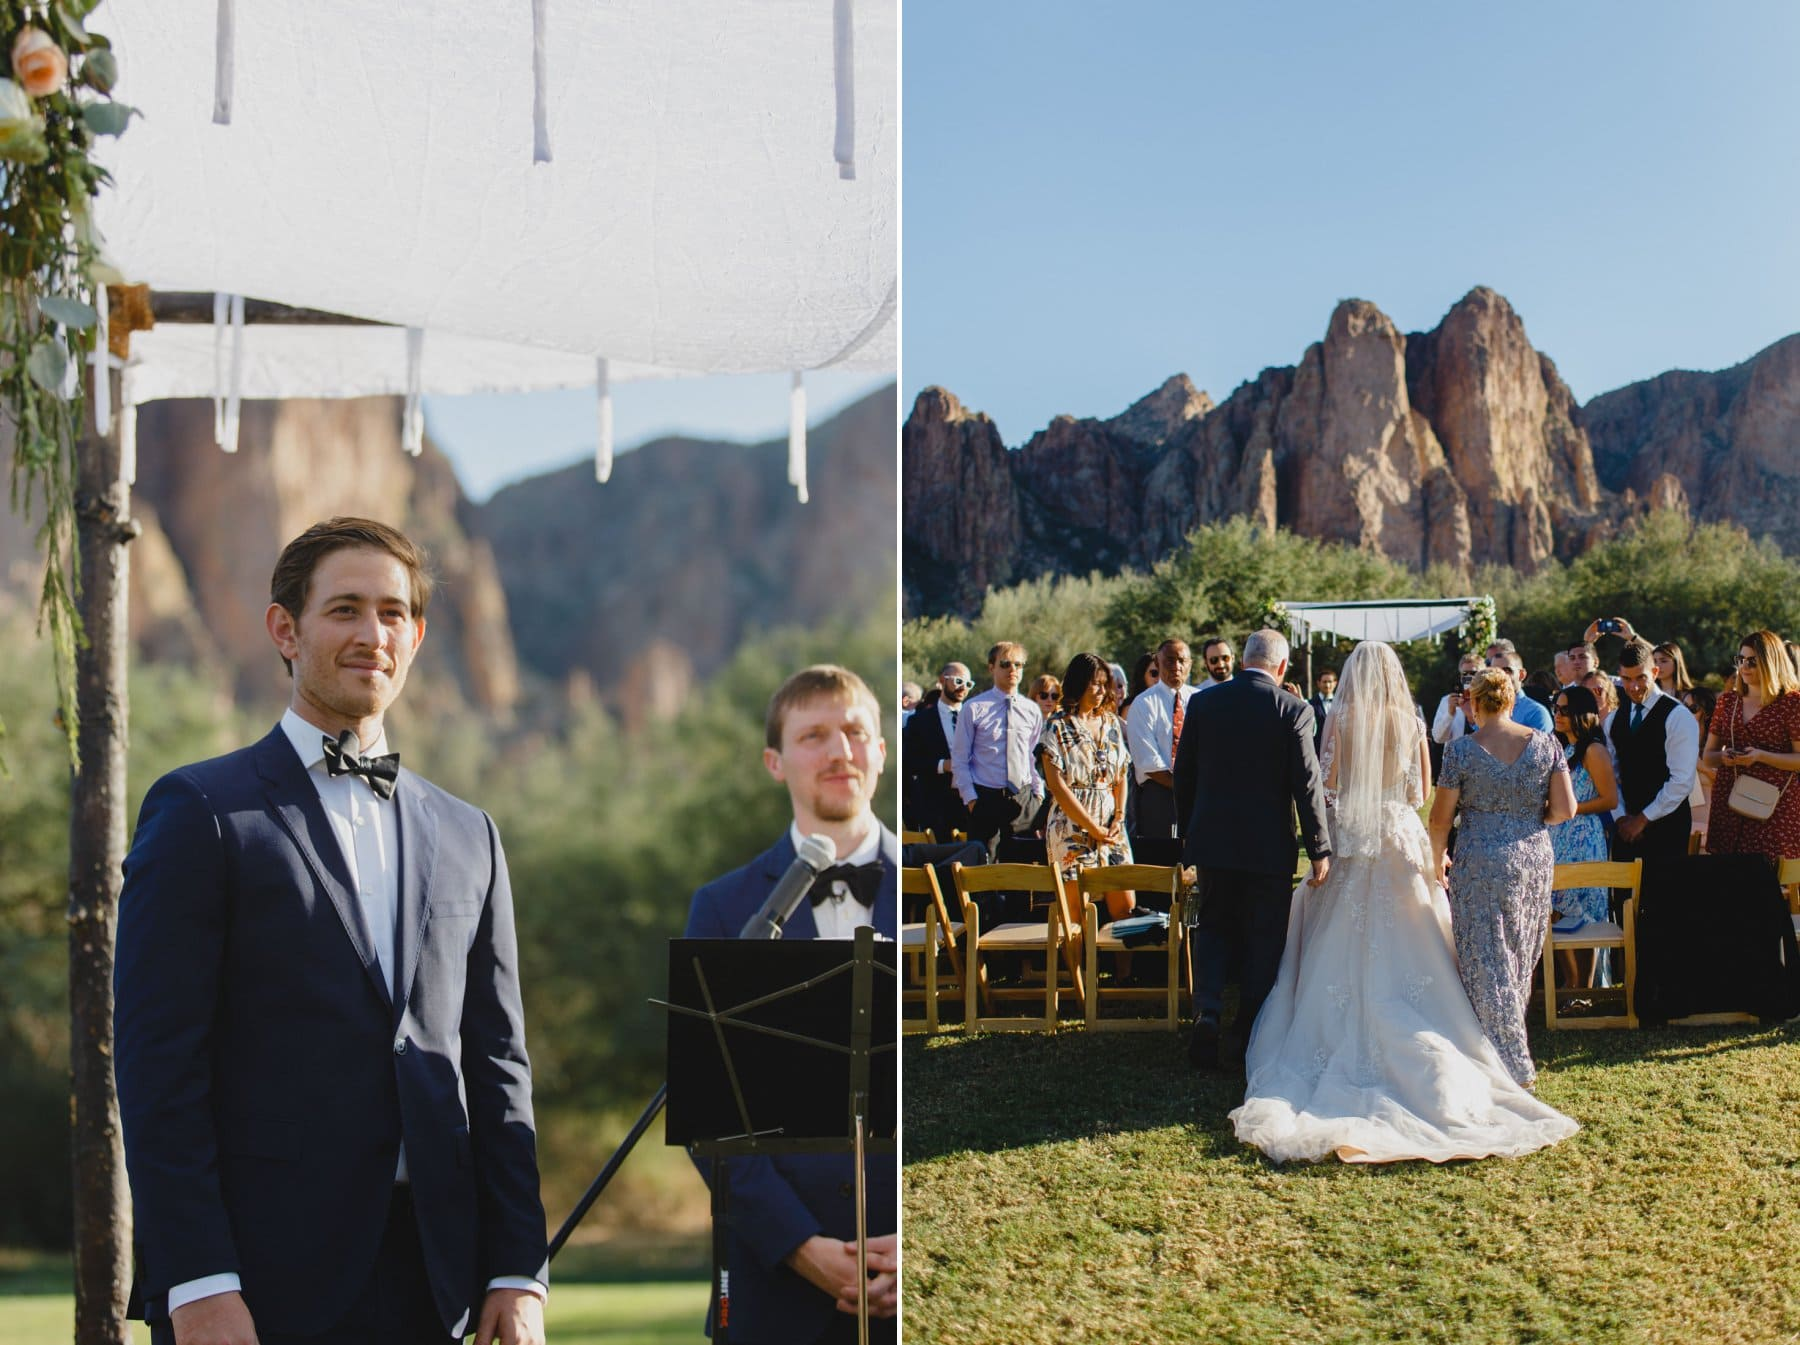 wedding ceremony at Saguaro Lake Ranch